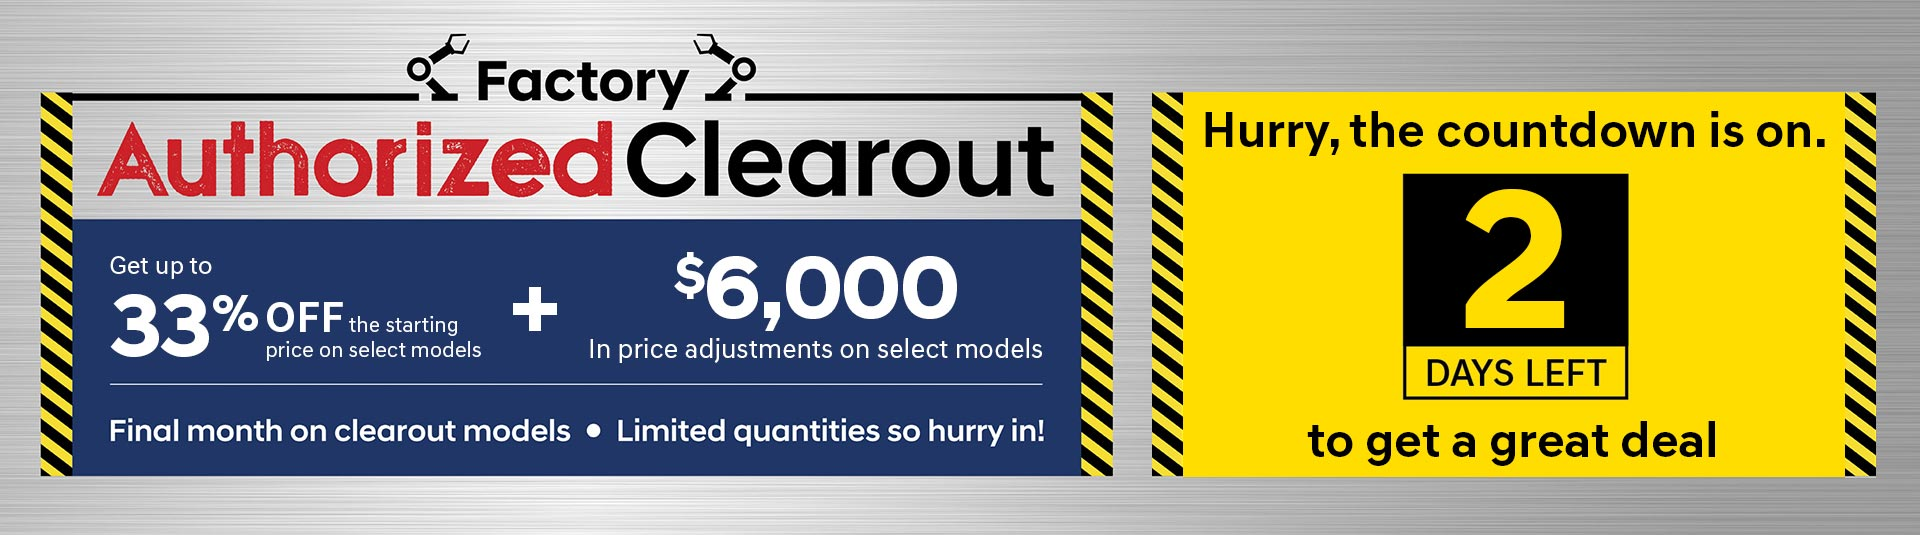 Hyundai Clearout Count Down